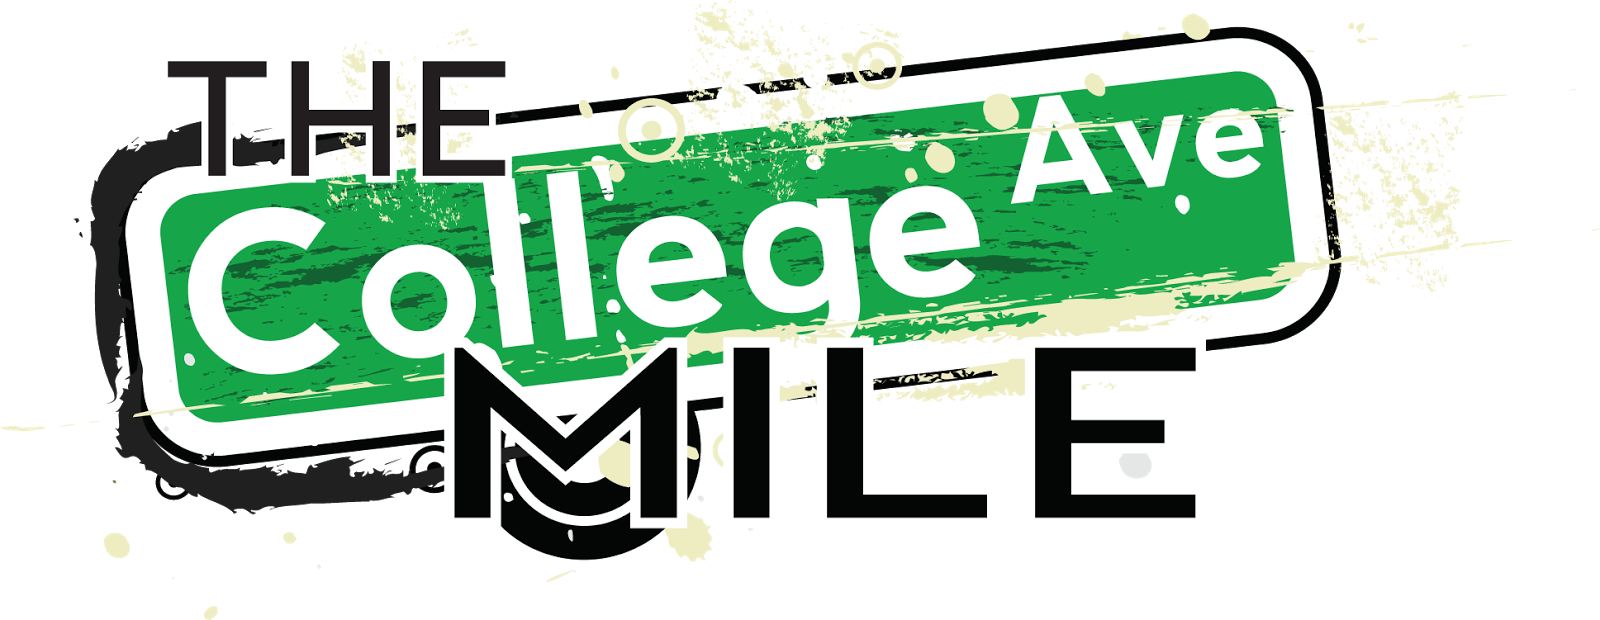 College Ave Mile